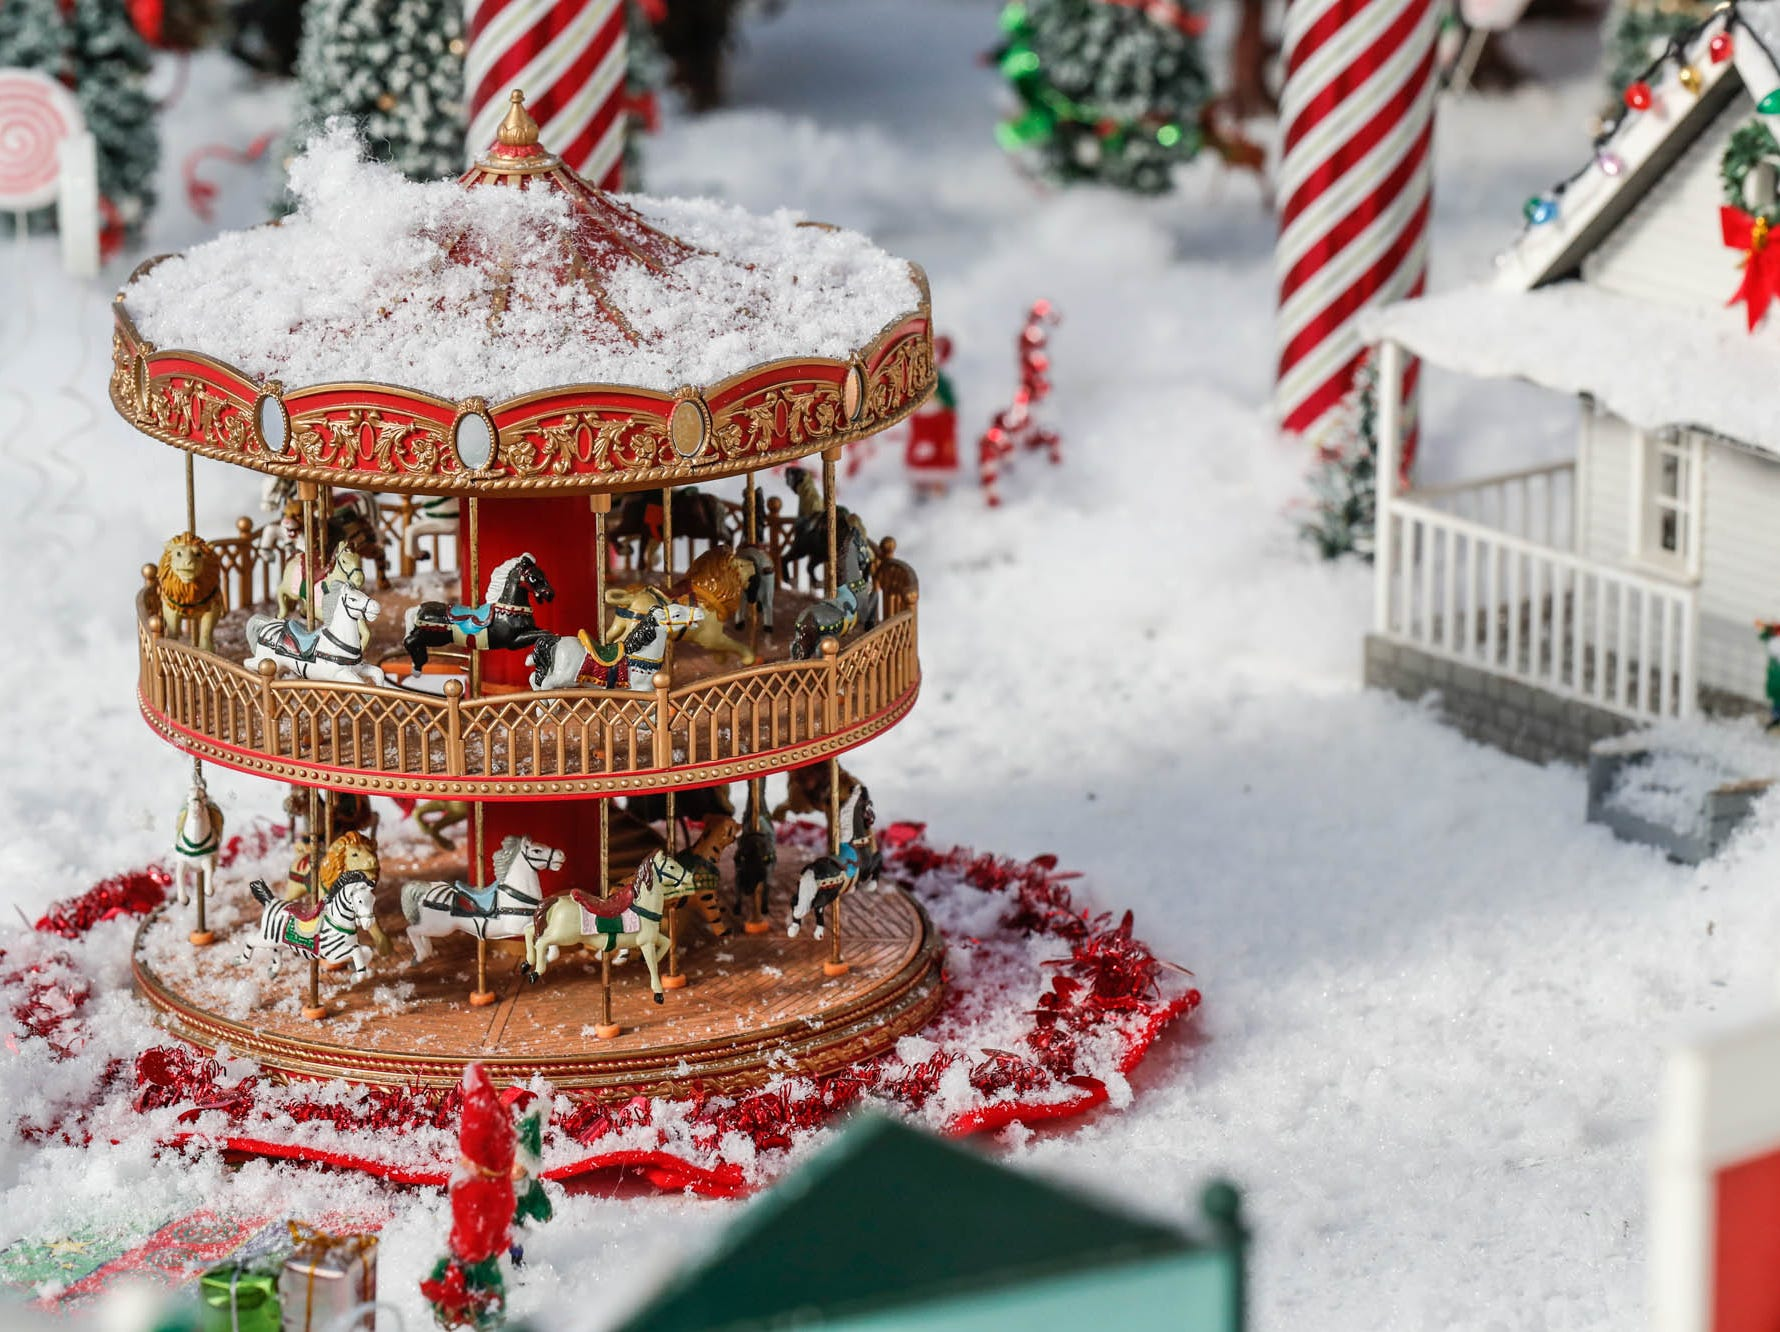 A double-decker carousel decorates the Conservatory Crossing holiday display at the Garfield Park Conservatory on Saturday, Dec. 29, 2018.